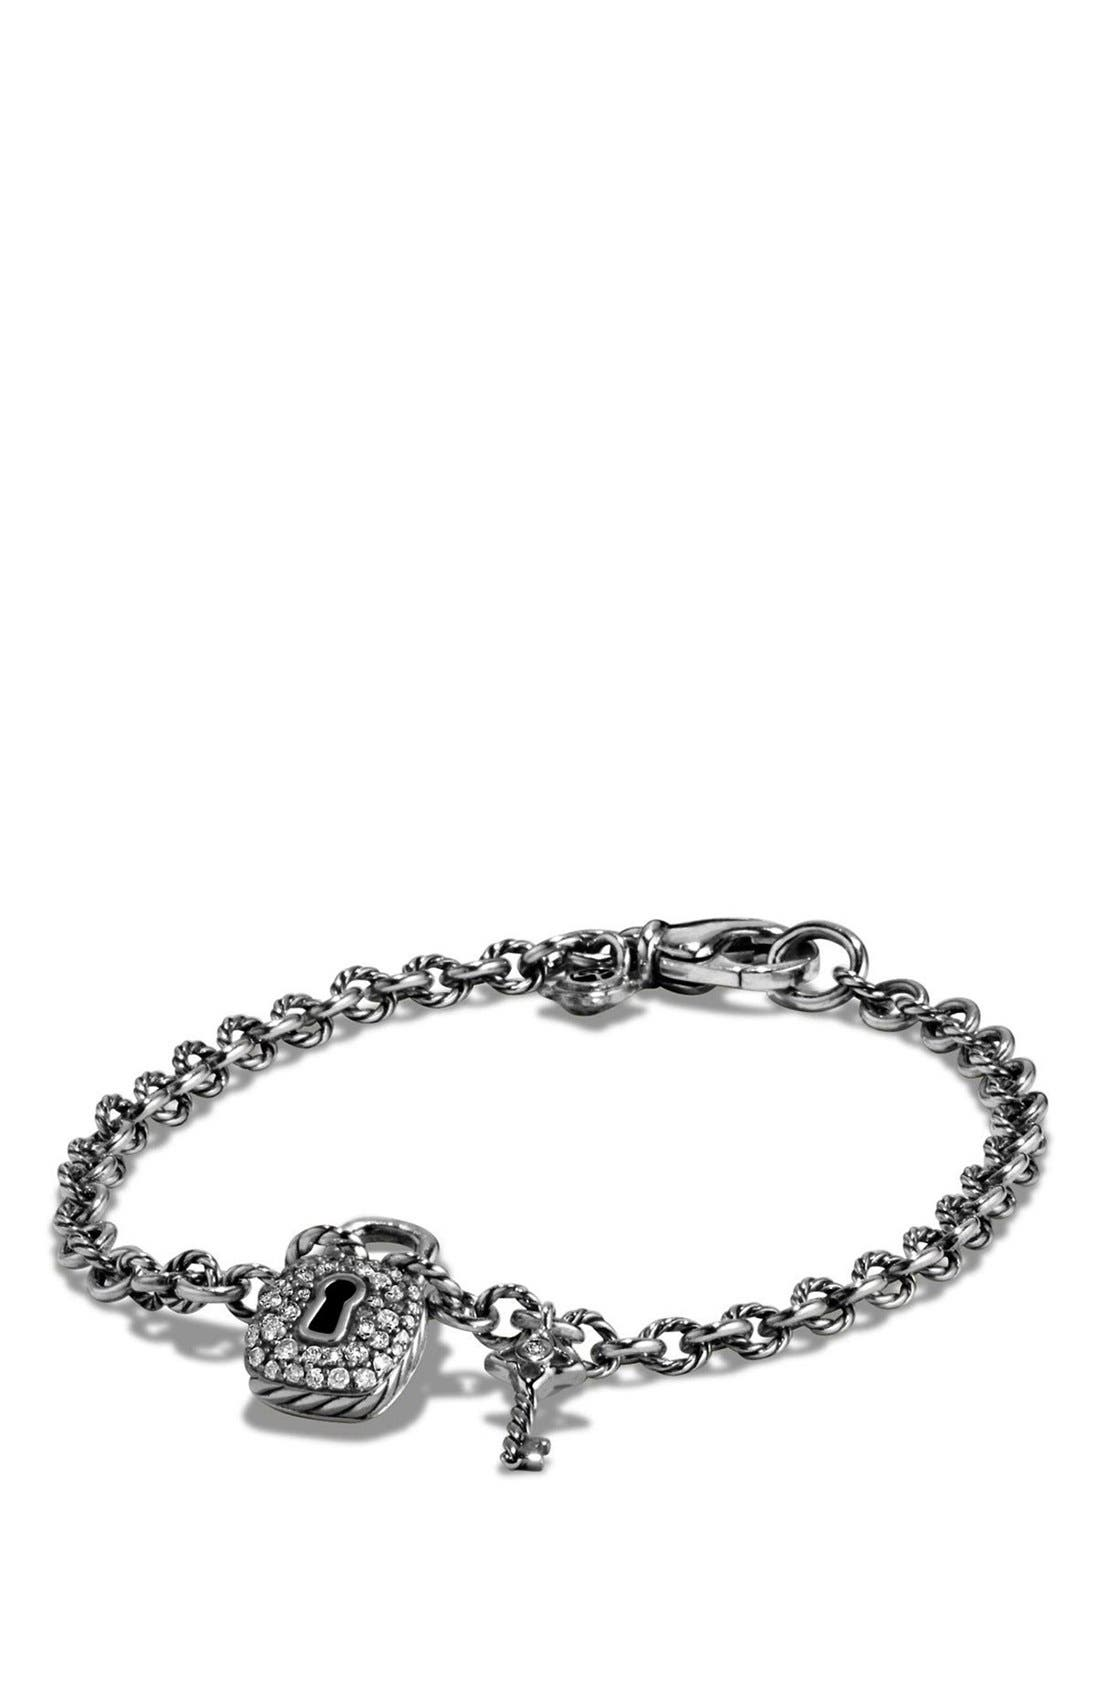 David Yurman 'Cable Collectibles' Lock and Key Charm Bracelet with Diamonds